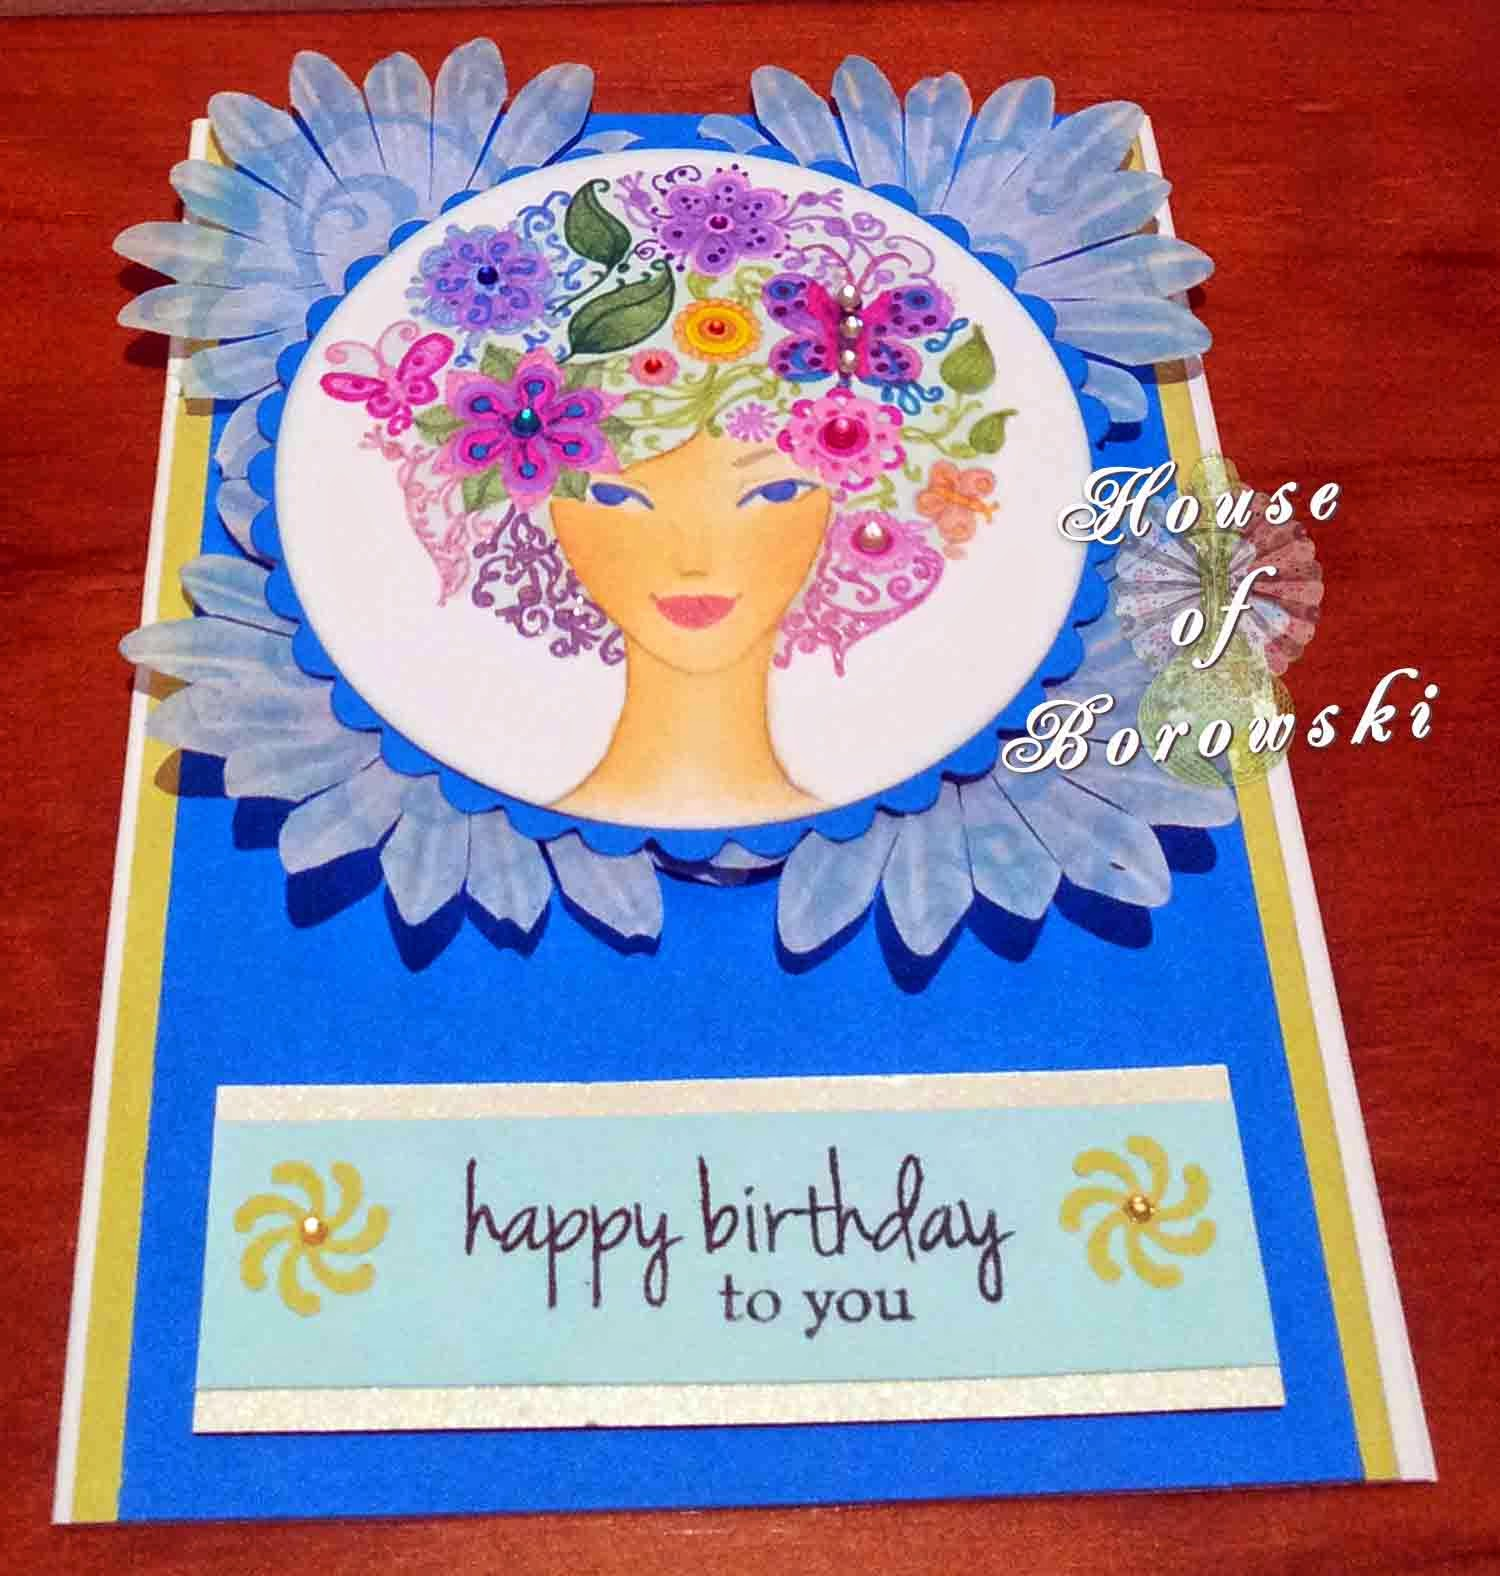 HOB, Copics, Kaszazz Flowers. Gina K Hello Sunshine, Spellinders Classic Circle Large, Spellbinders Petite Scalloped Large